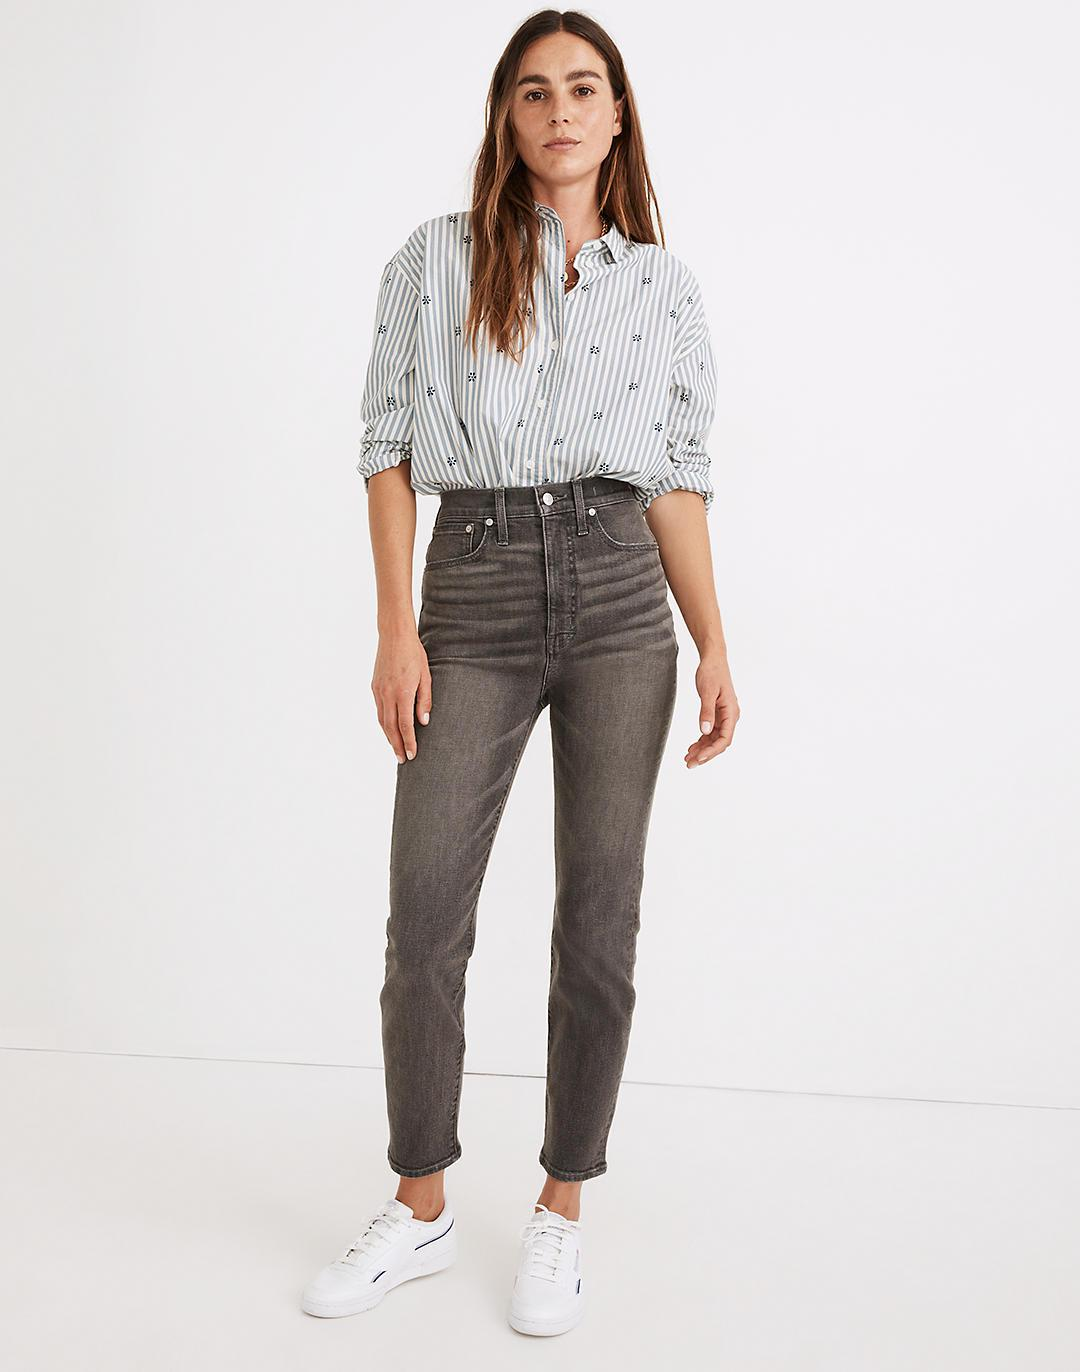 The Tall Momjean in Dinsmore Wash